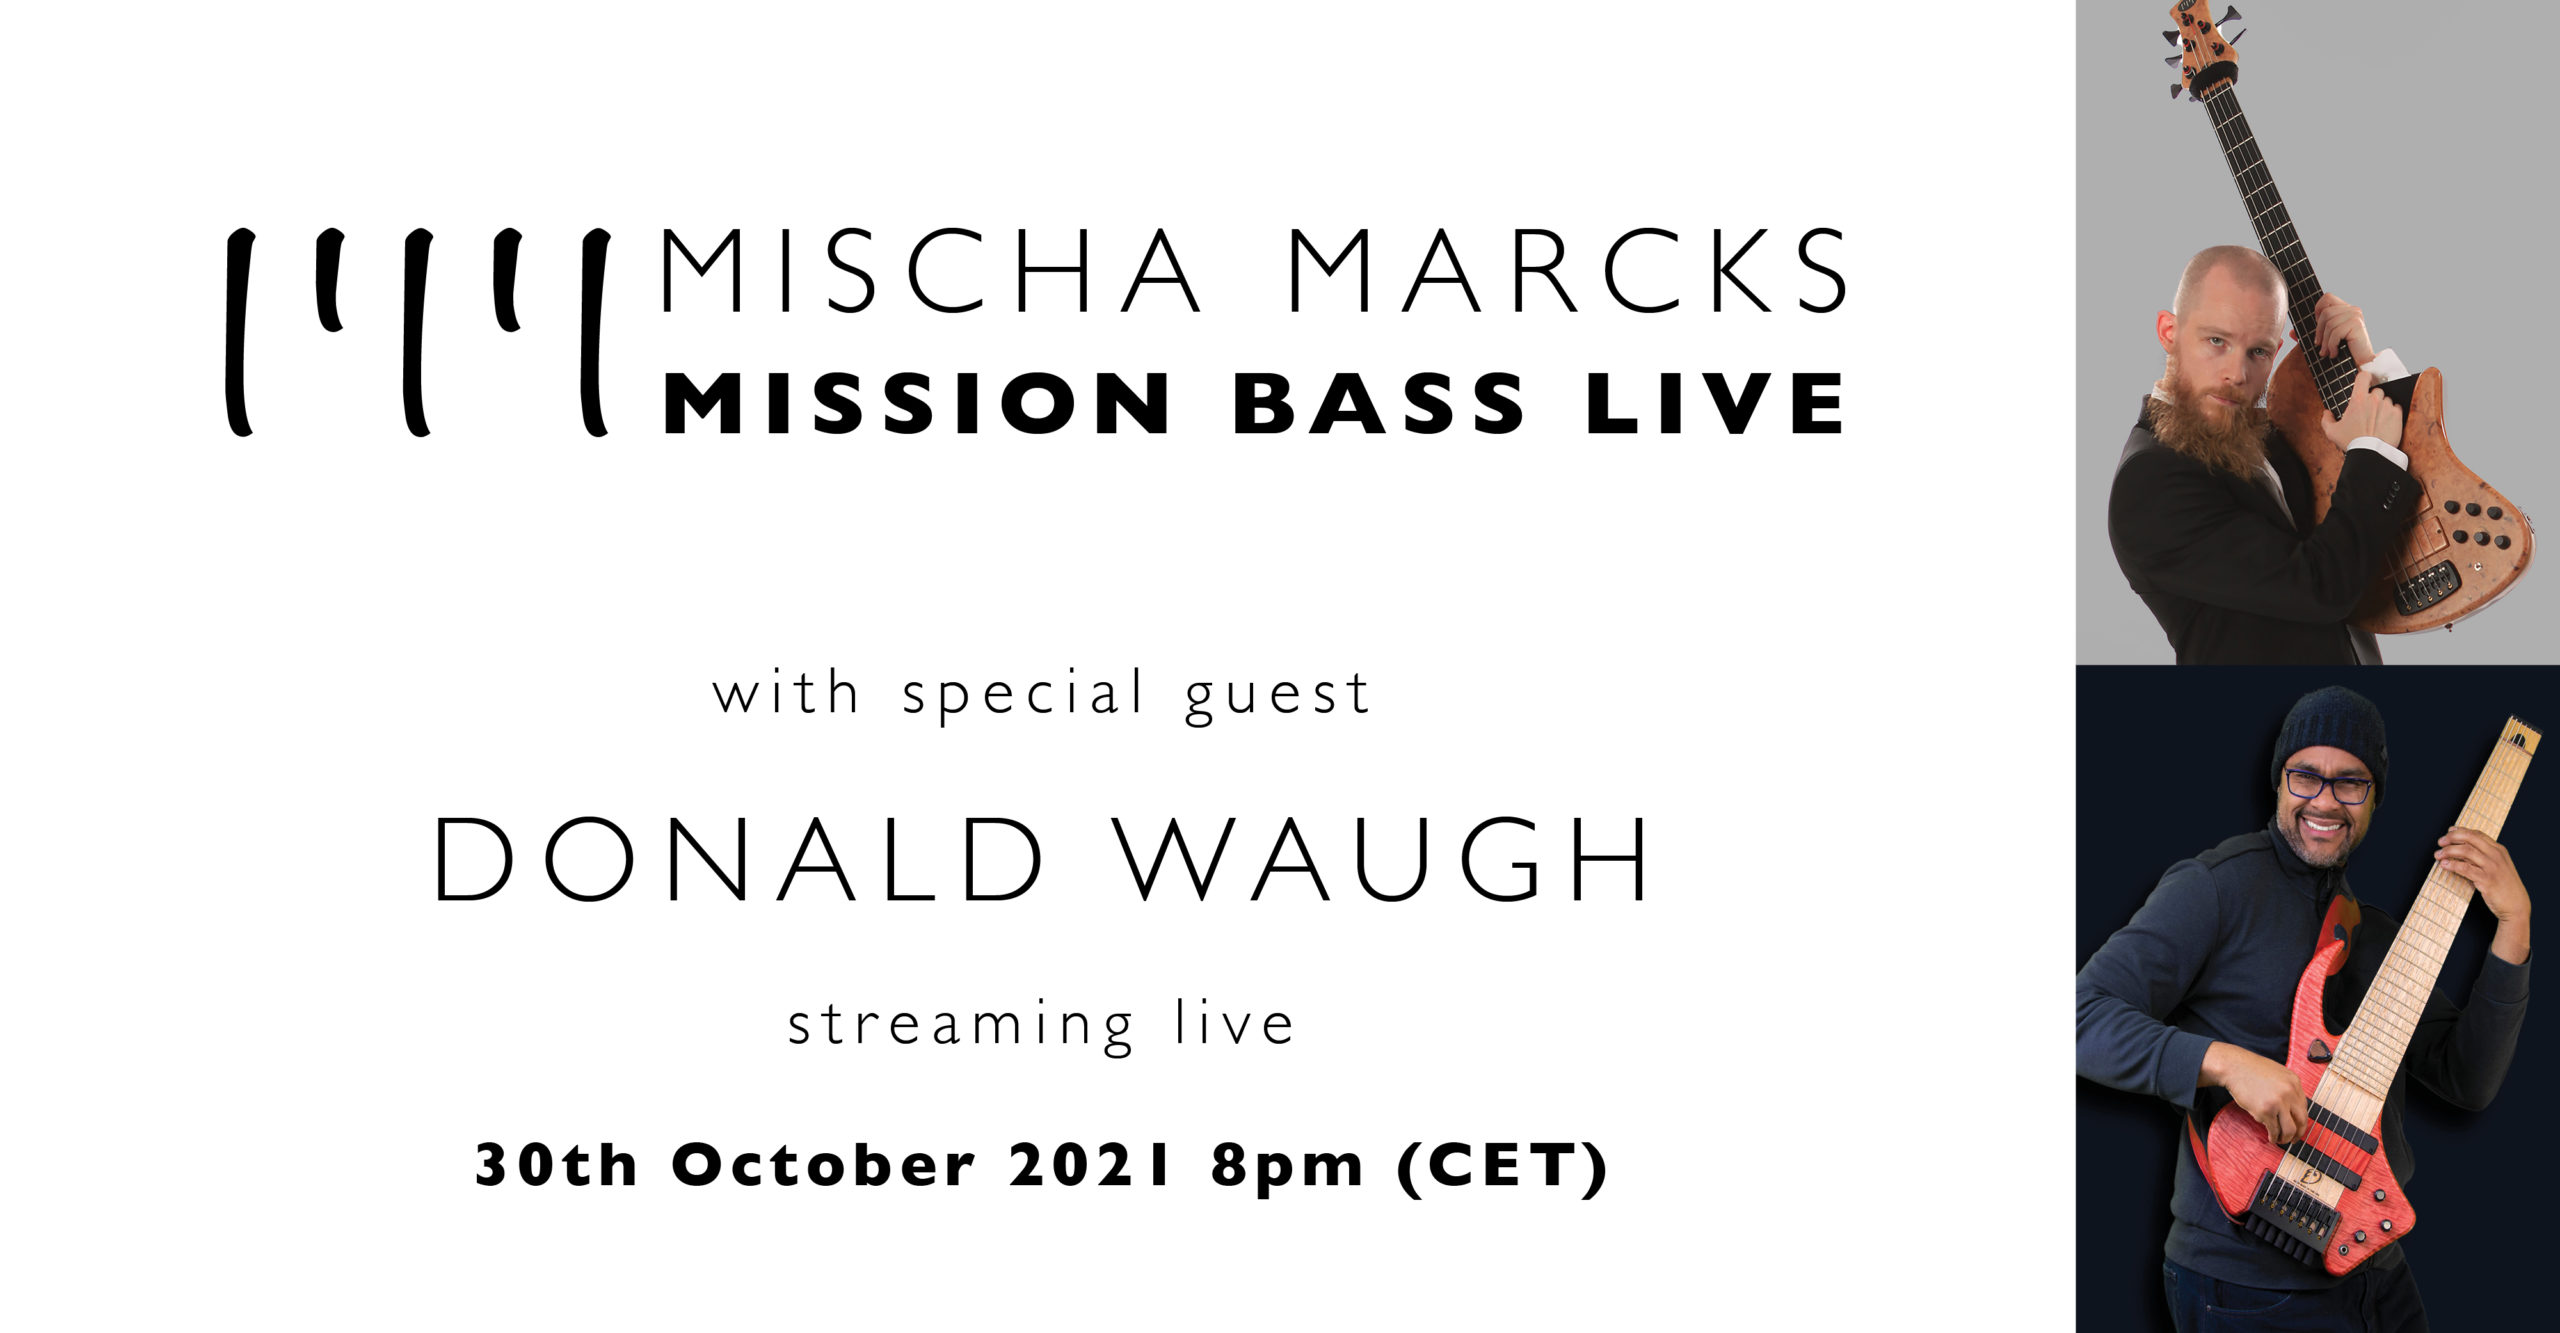 Mischa Marcks presents Mission Bass Live featuring Donald Waugh